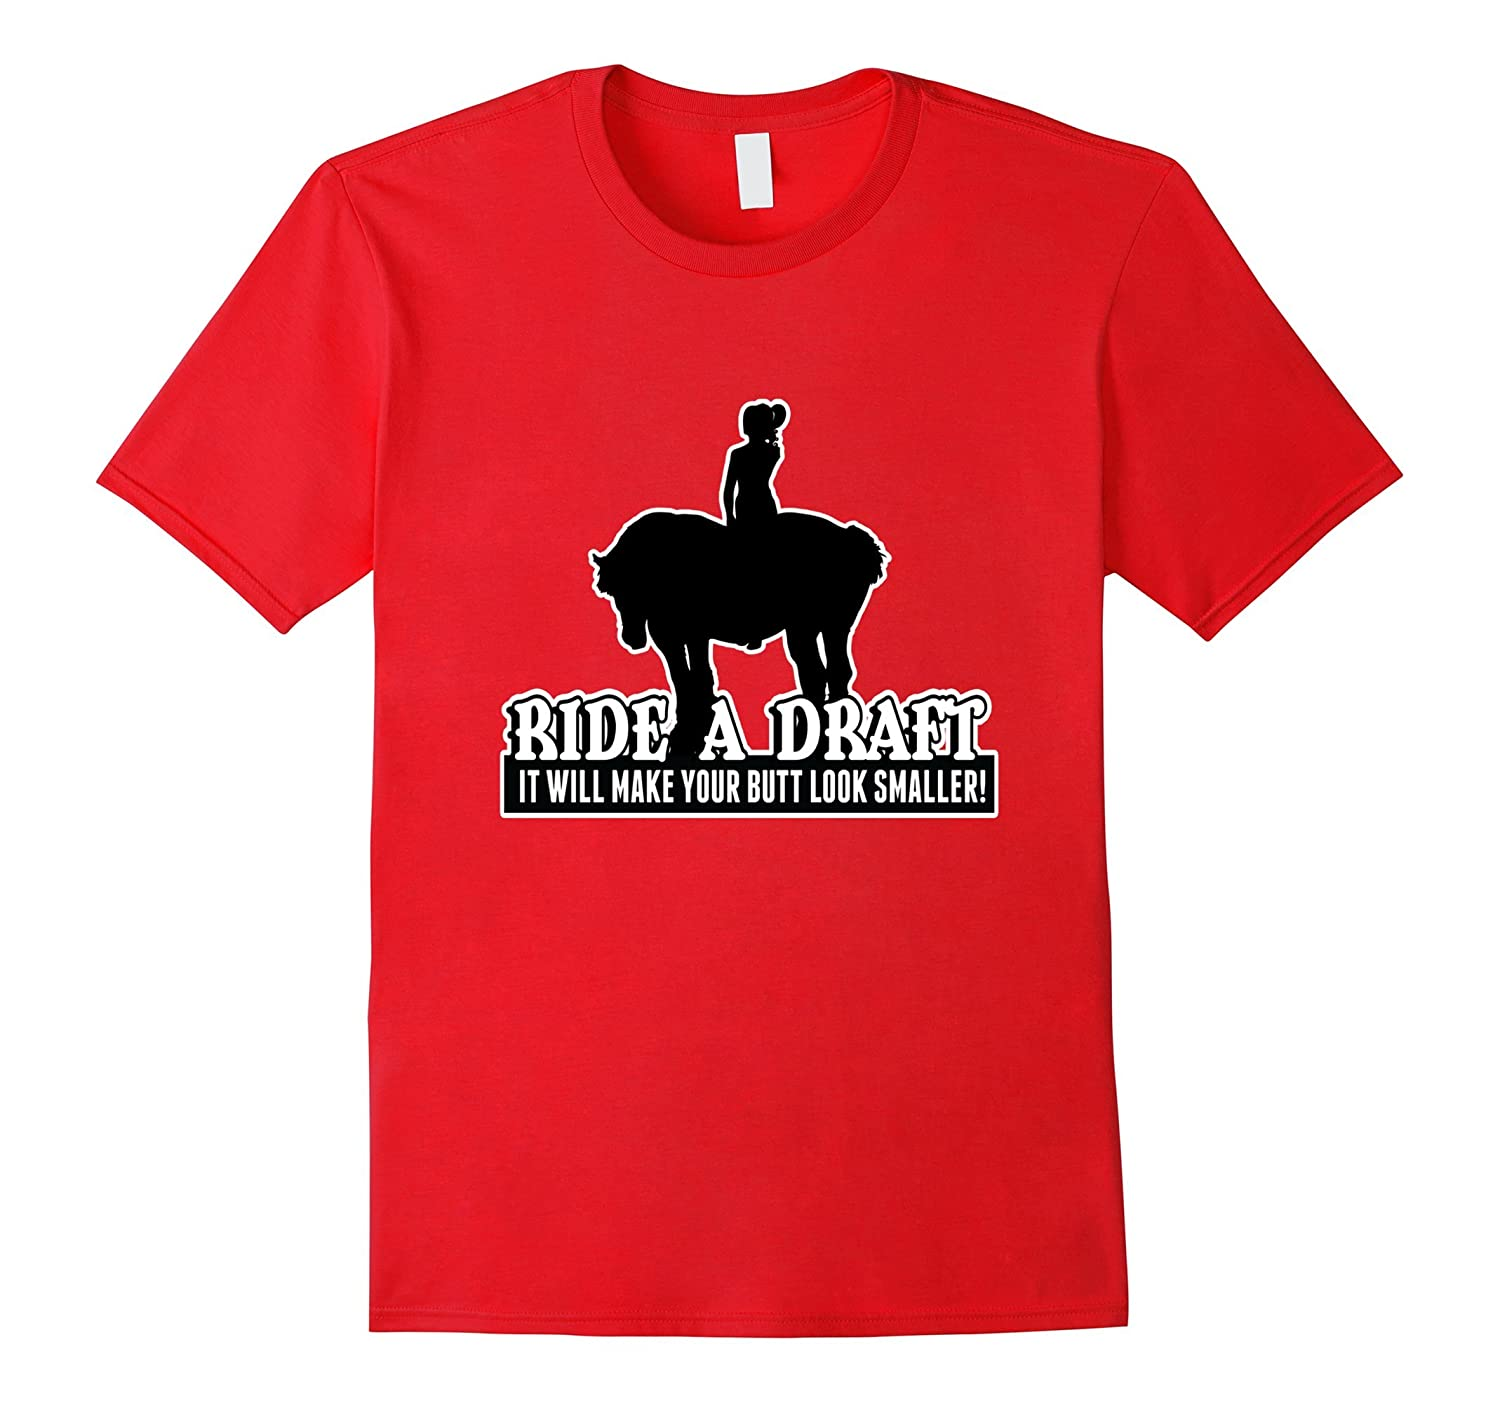 Funny Ride a Draft Horse T-Shirt for Women-Vaci